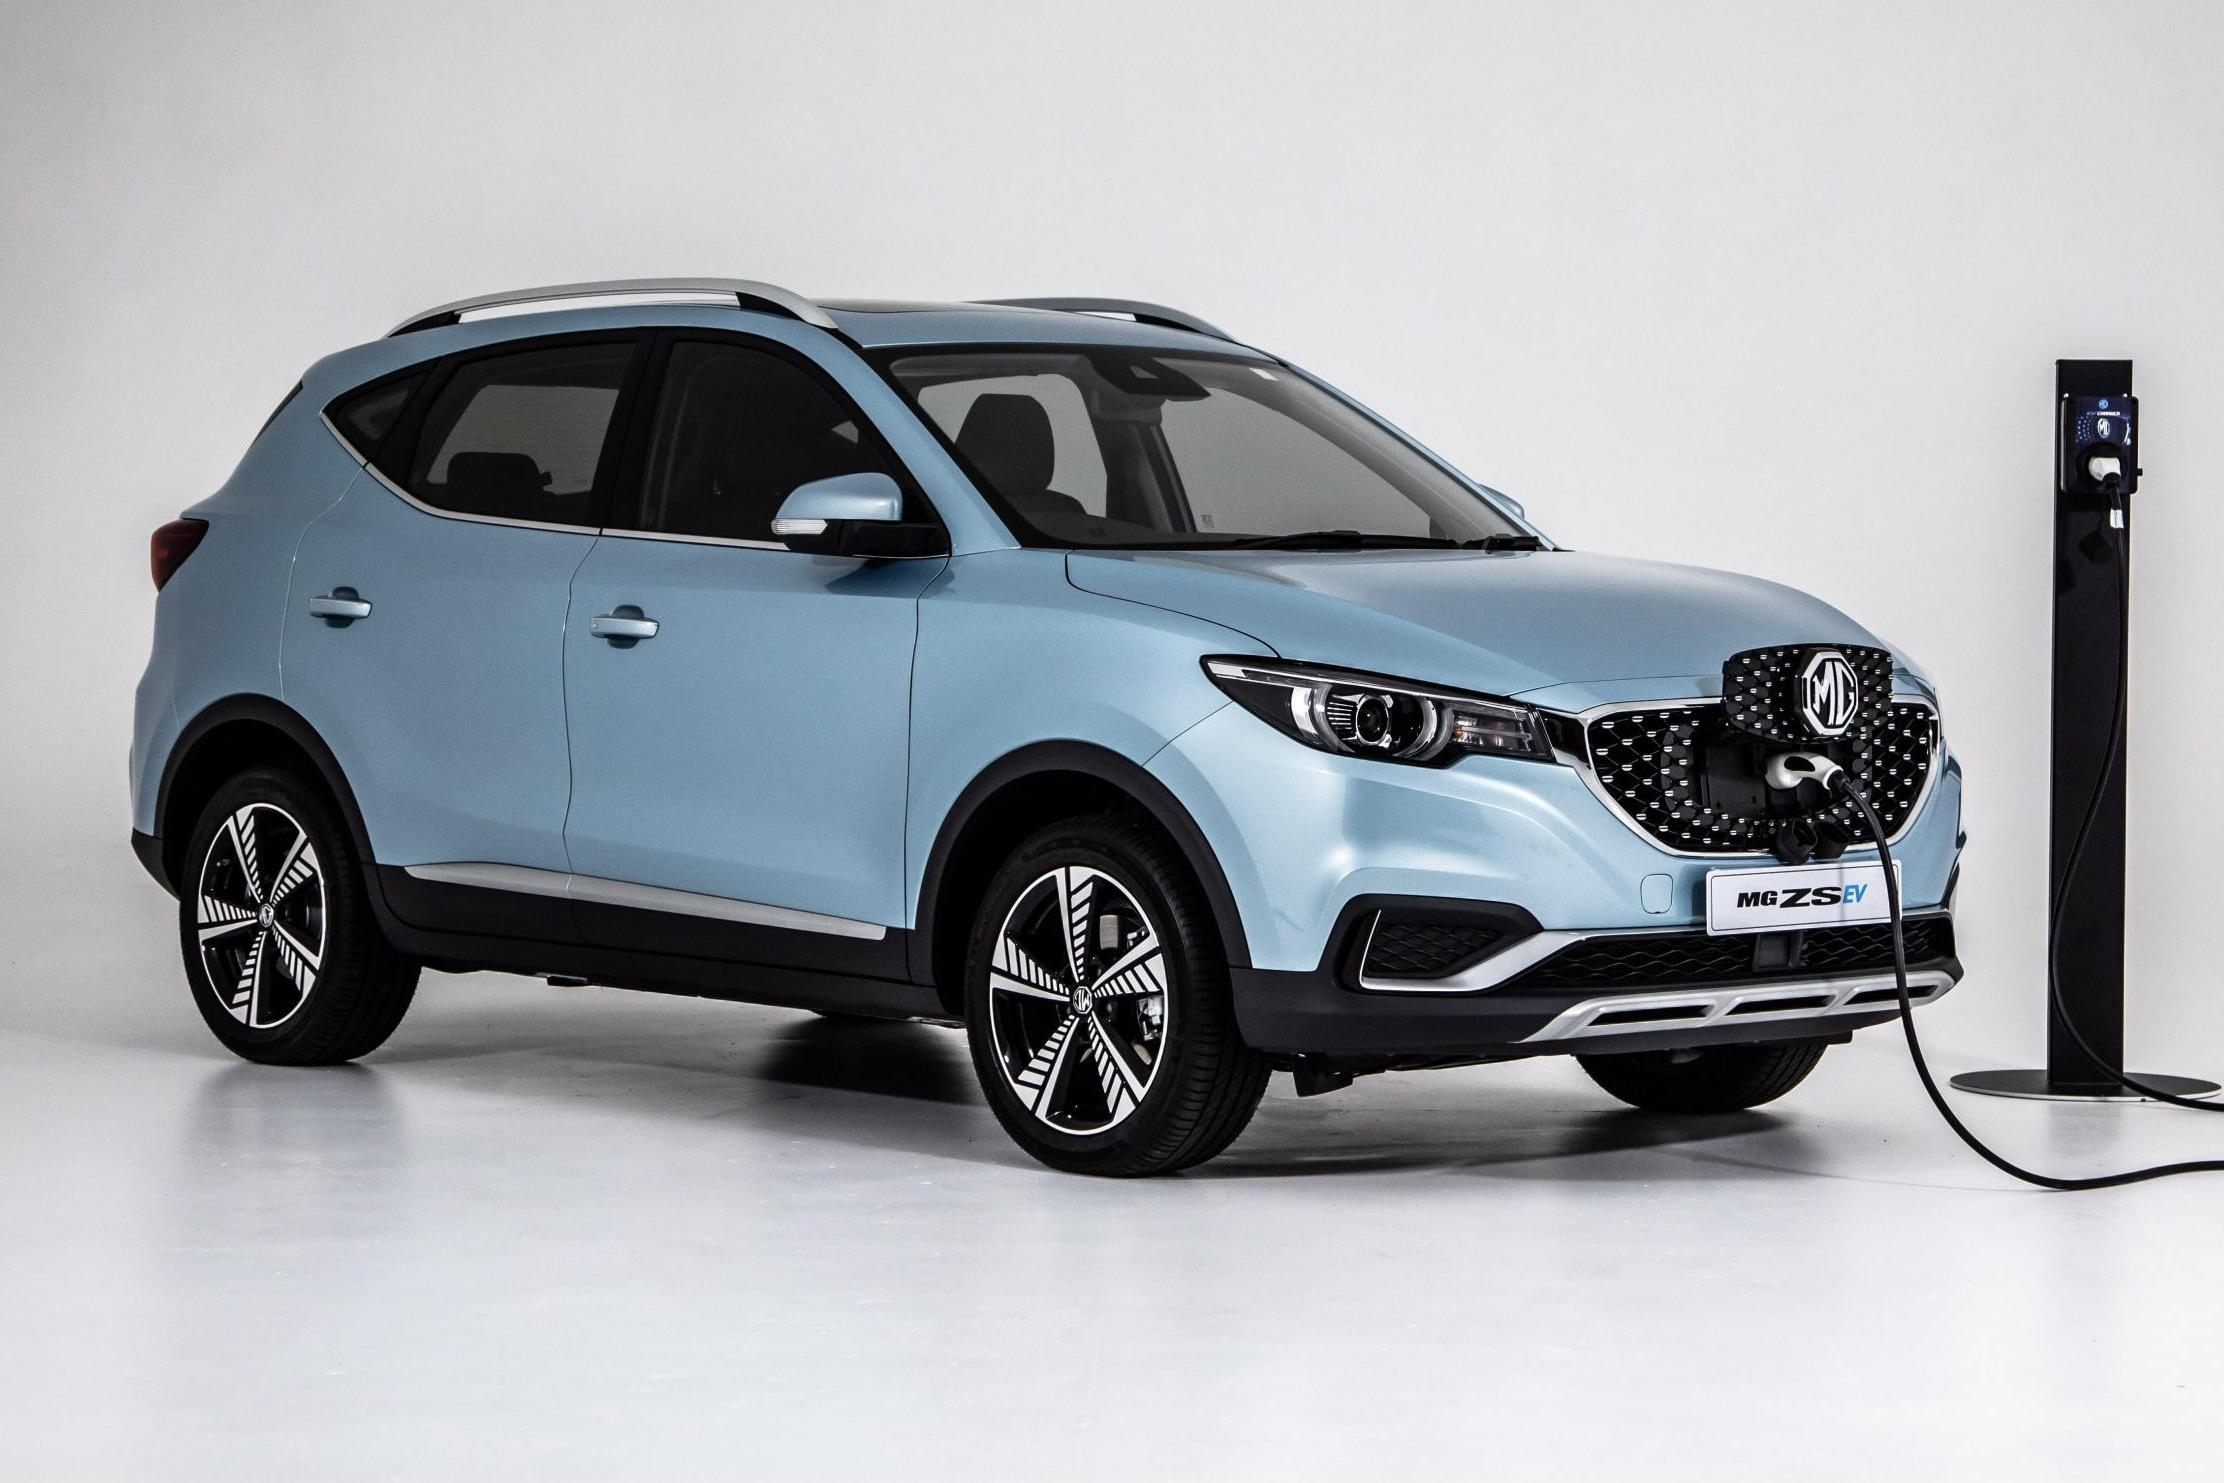 MG ZS EV extends lead over cheapest electric car rivals